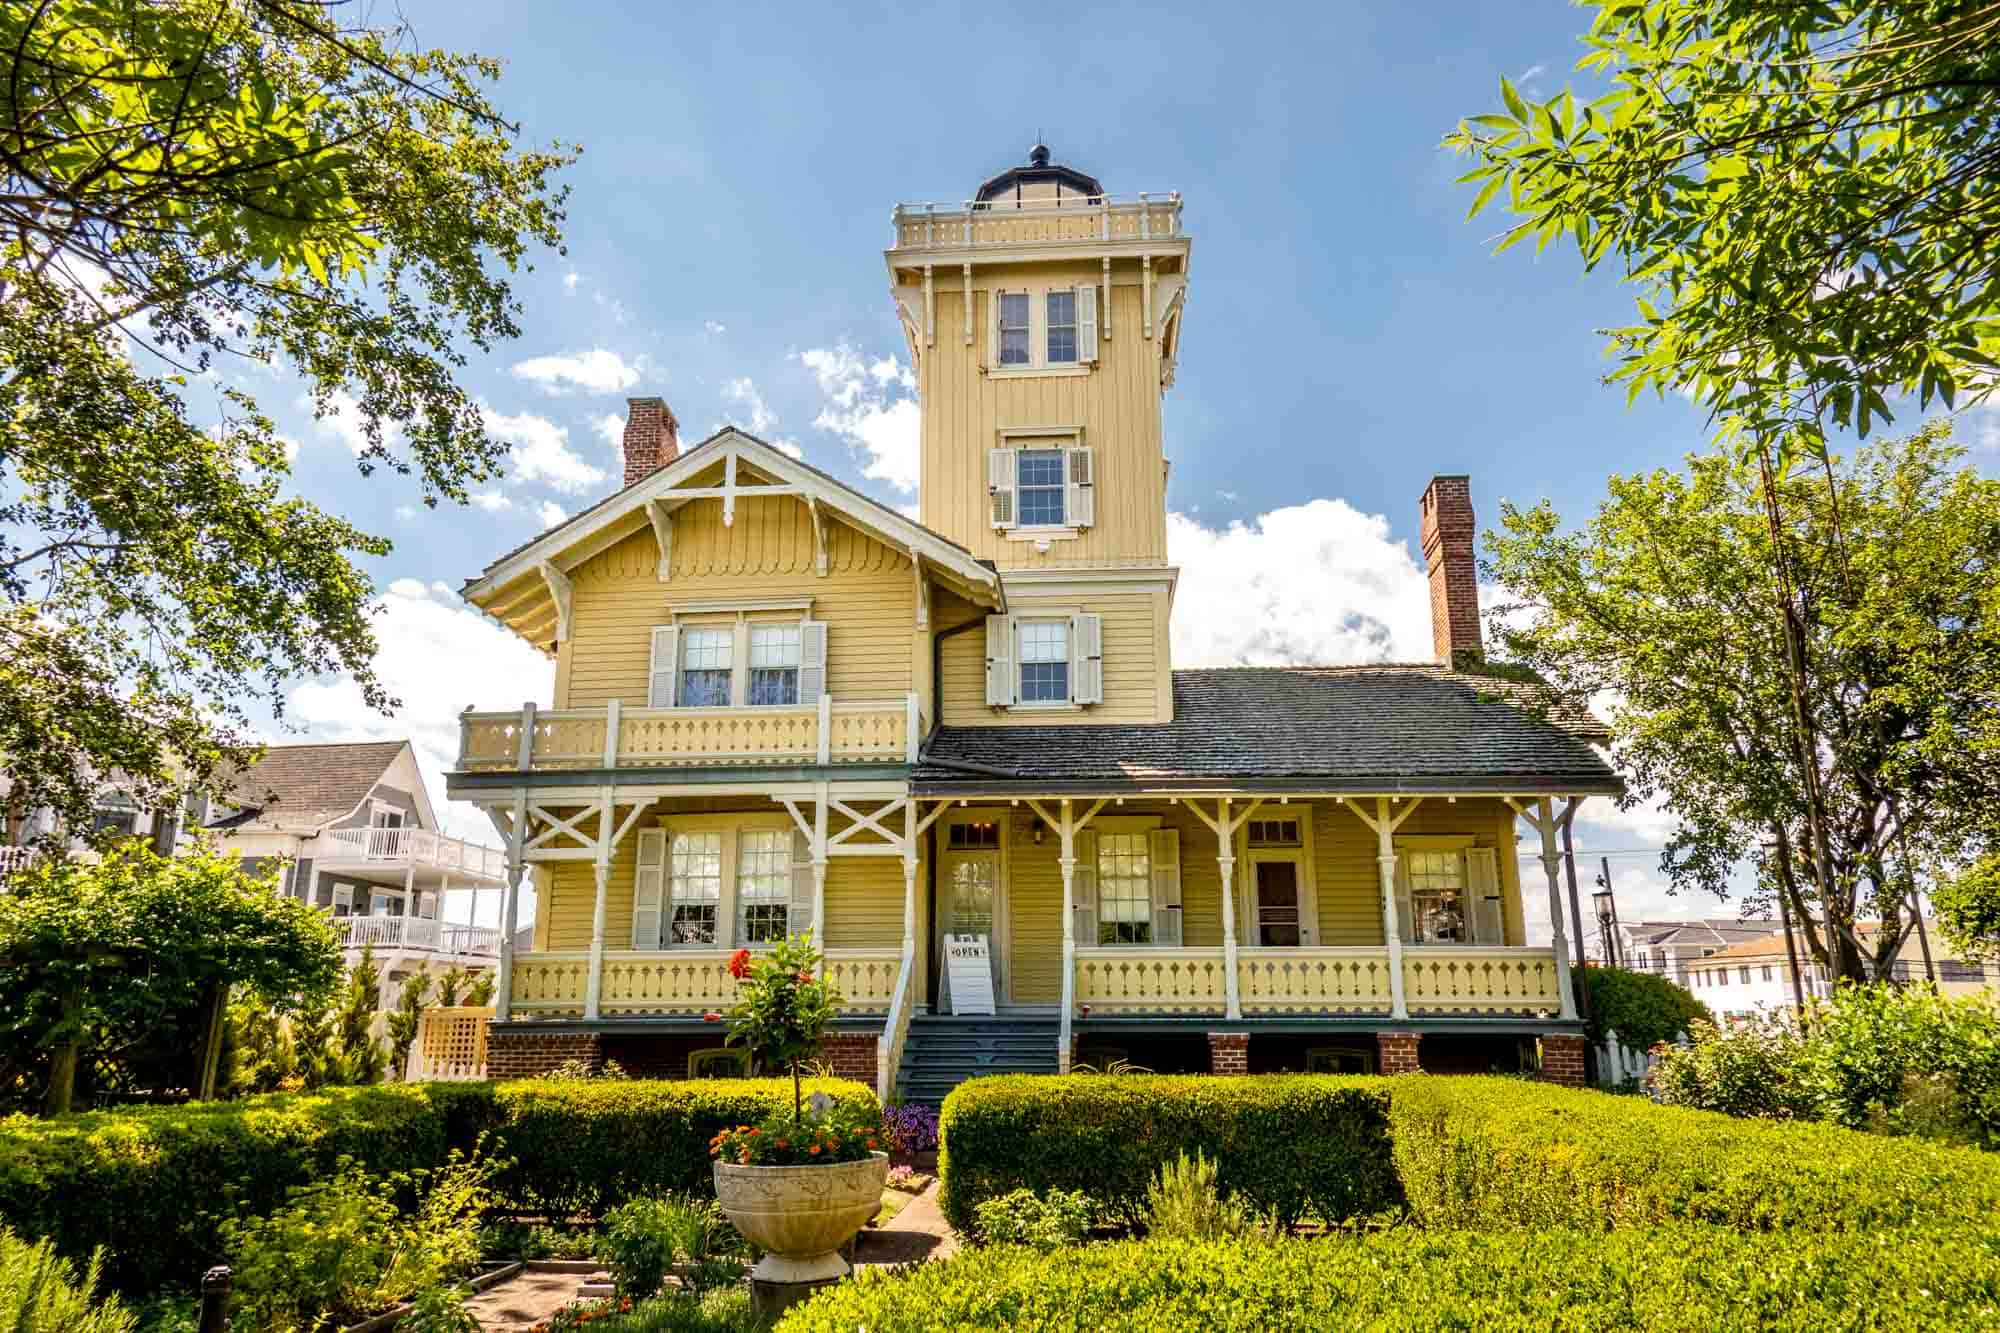 Yellow Victorian-era building with lighthouse tower